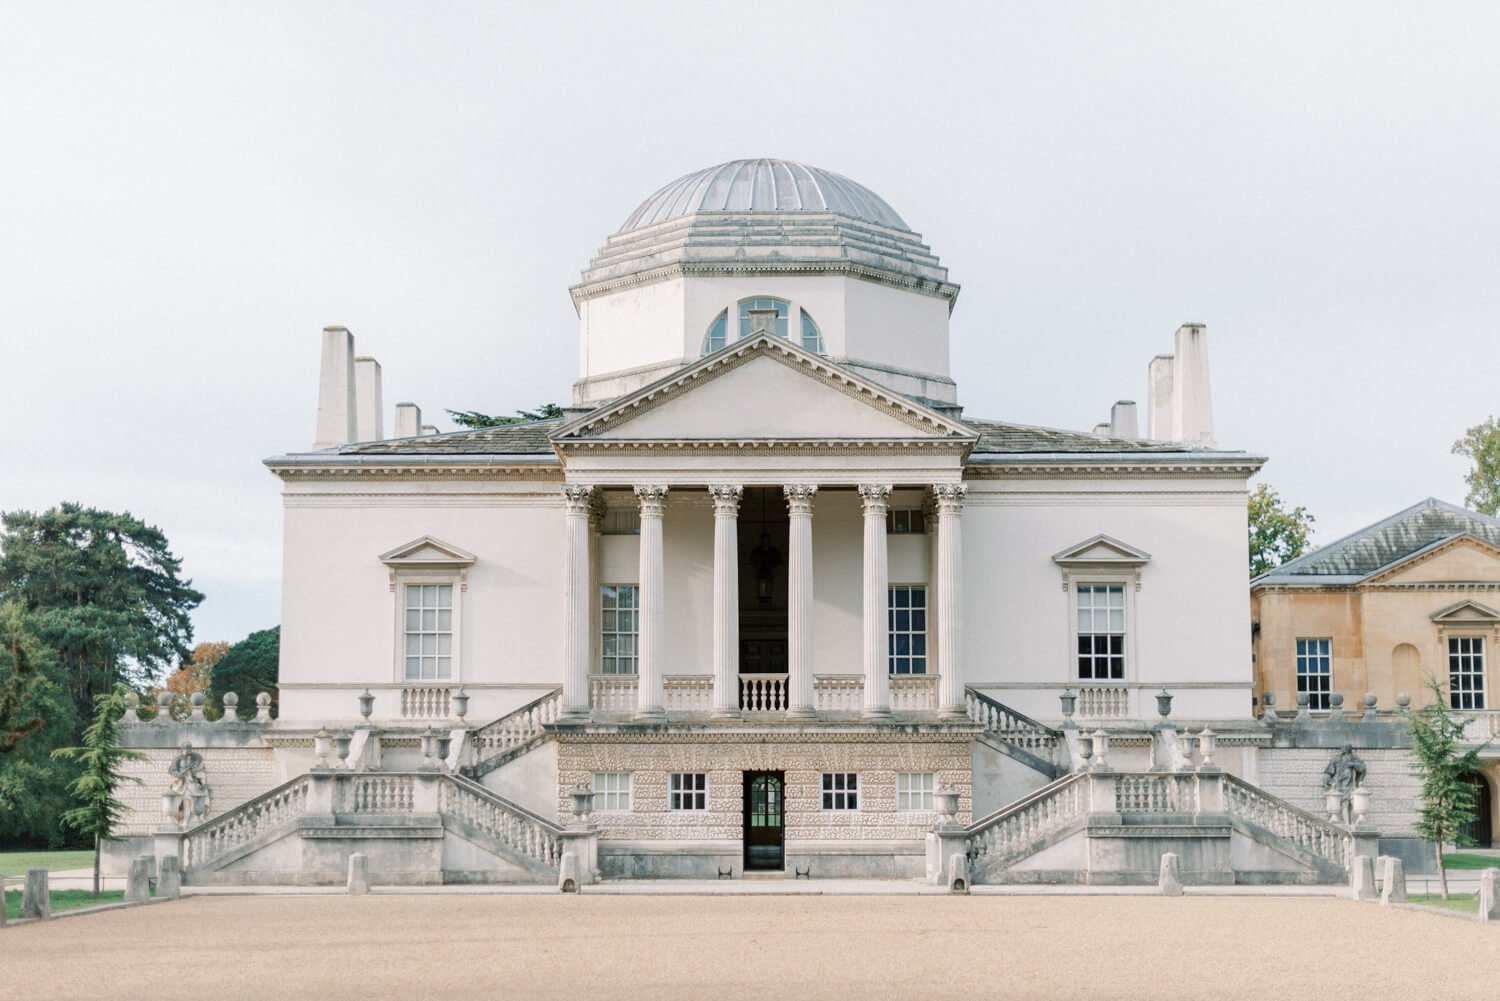 Wedding Photography FAQs In photo: Chiswick House - one of the best London Wedding Venues for Intimate Weddings. Photo by Cristina Ilao Photography